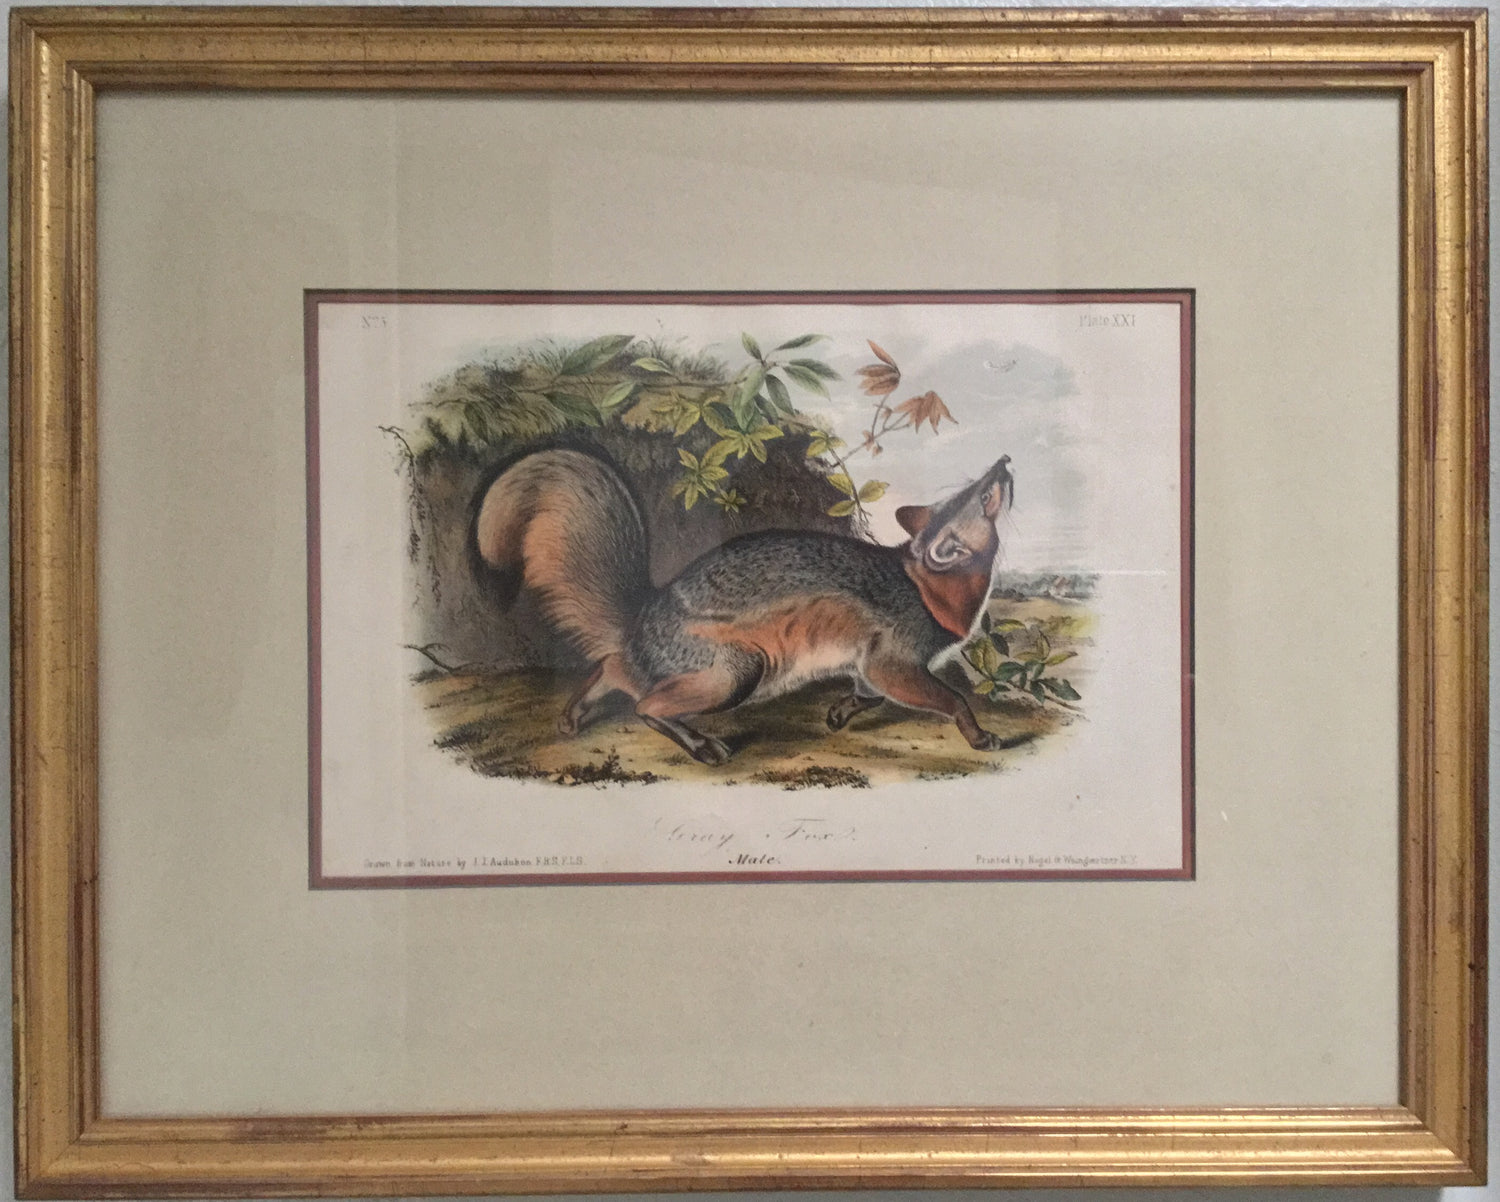 Original Audubon Octavo Grey Fox, Plate 21 (Framed)